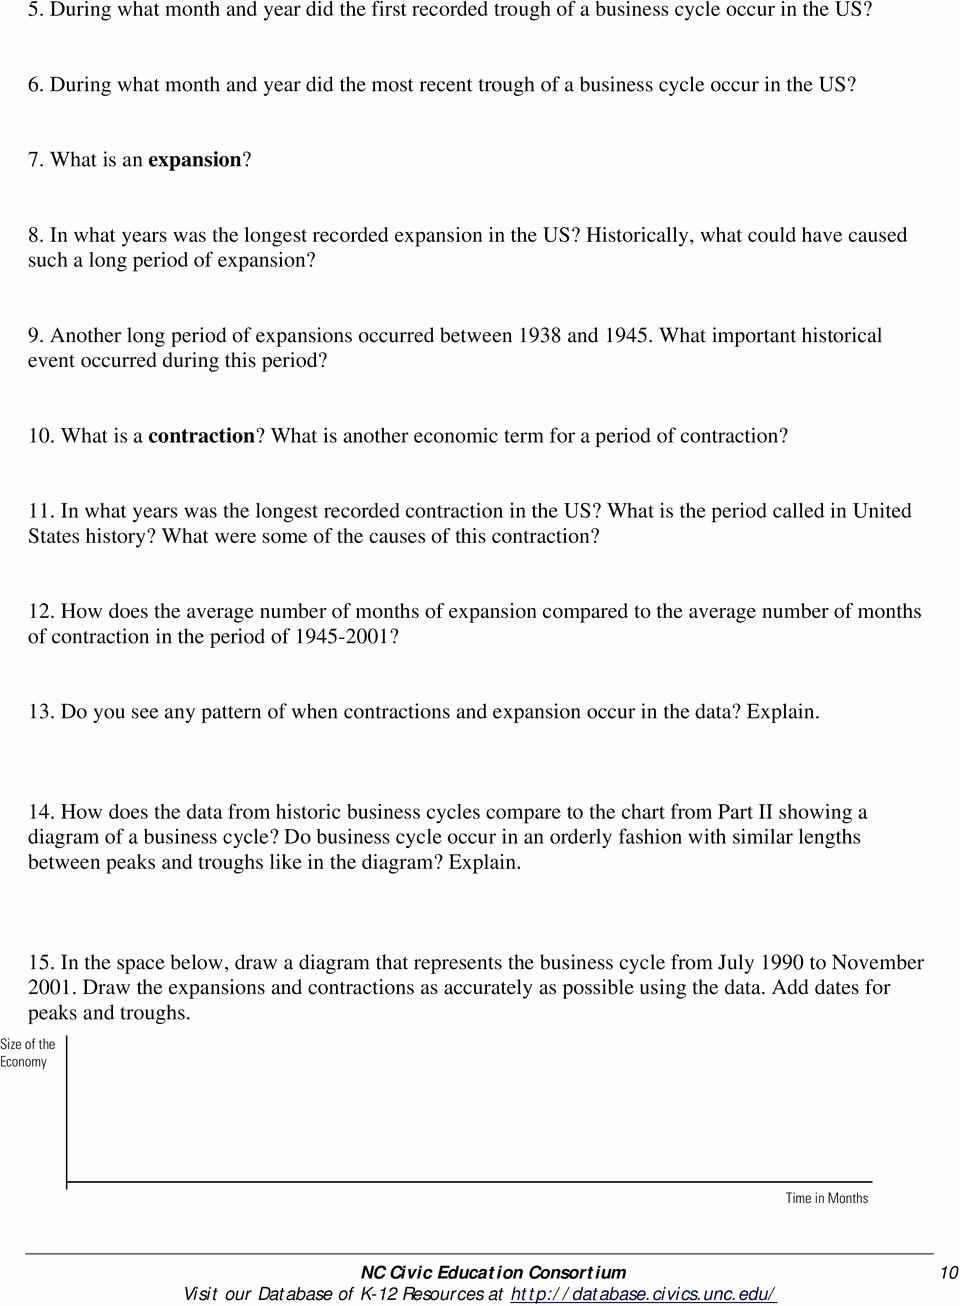 Economic Systems Worksheet Pdf Beautiful Chapter 12 Section 2 Business Cycles Worksheet Answers